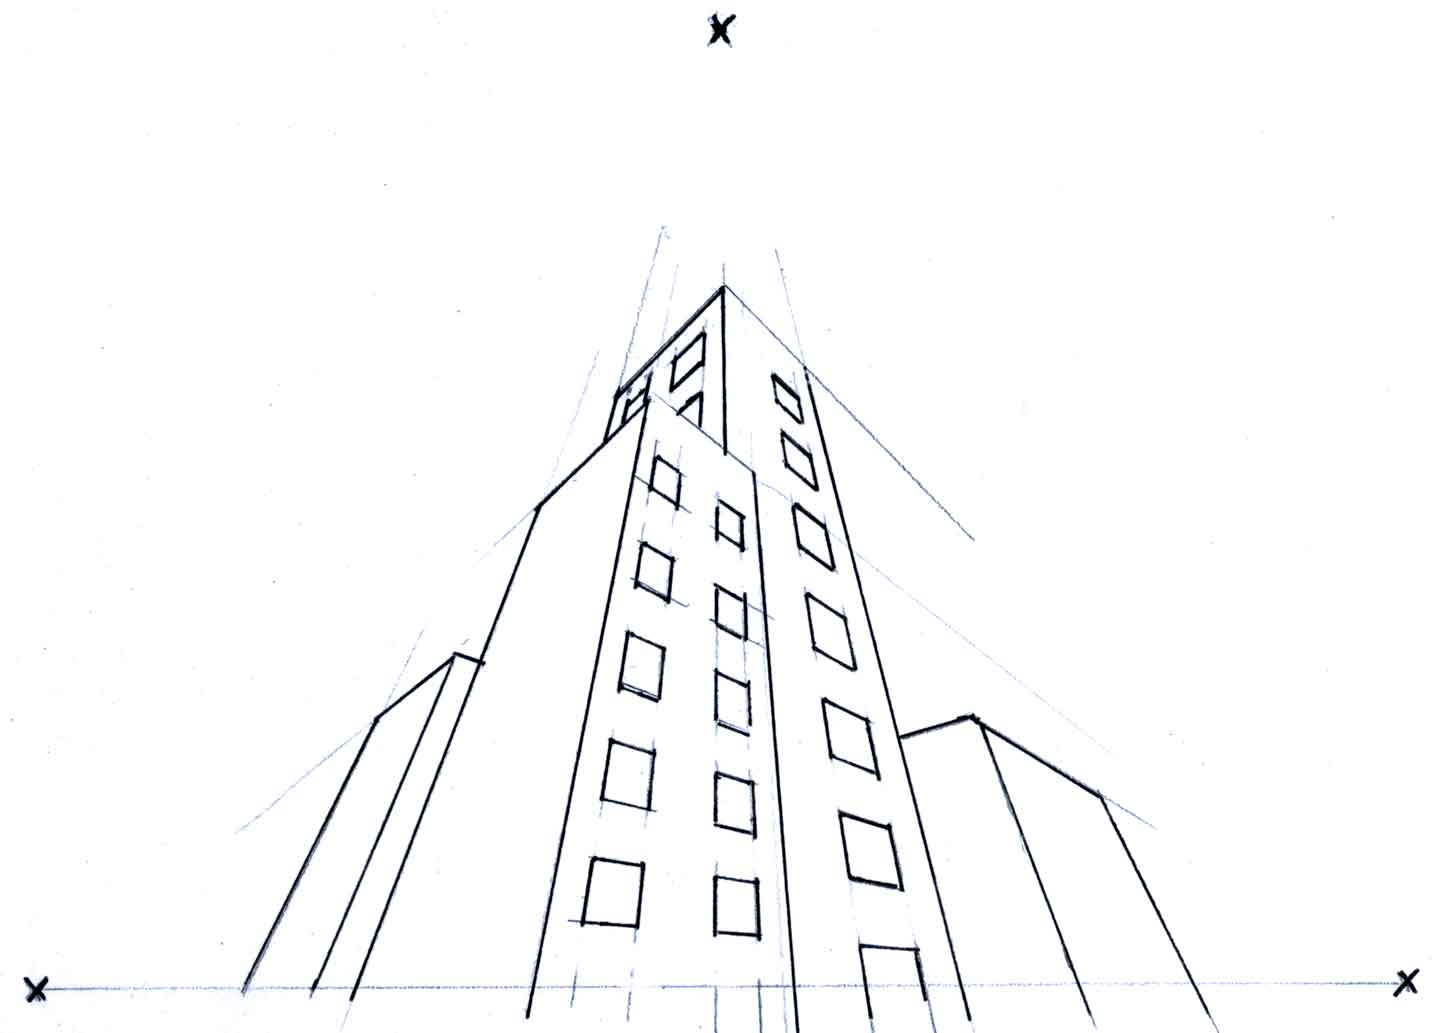 Perspective Drawings Of Buildings linear perspective drawing: overview of 3 drawing types